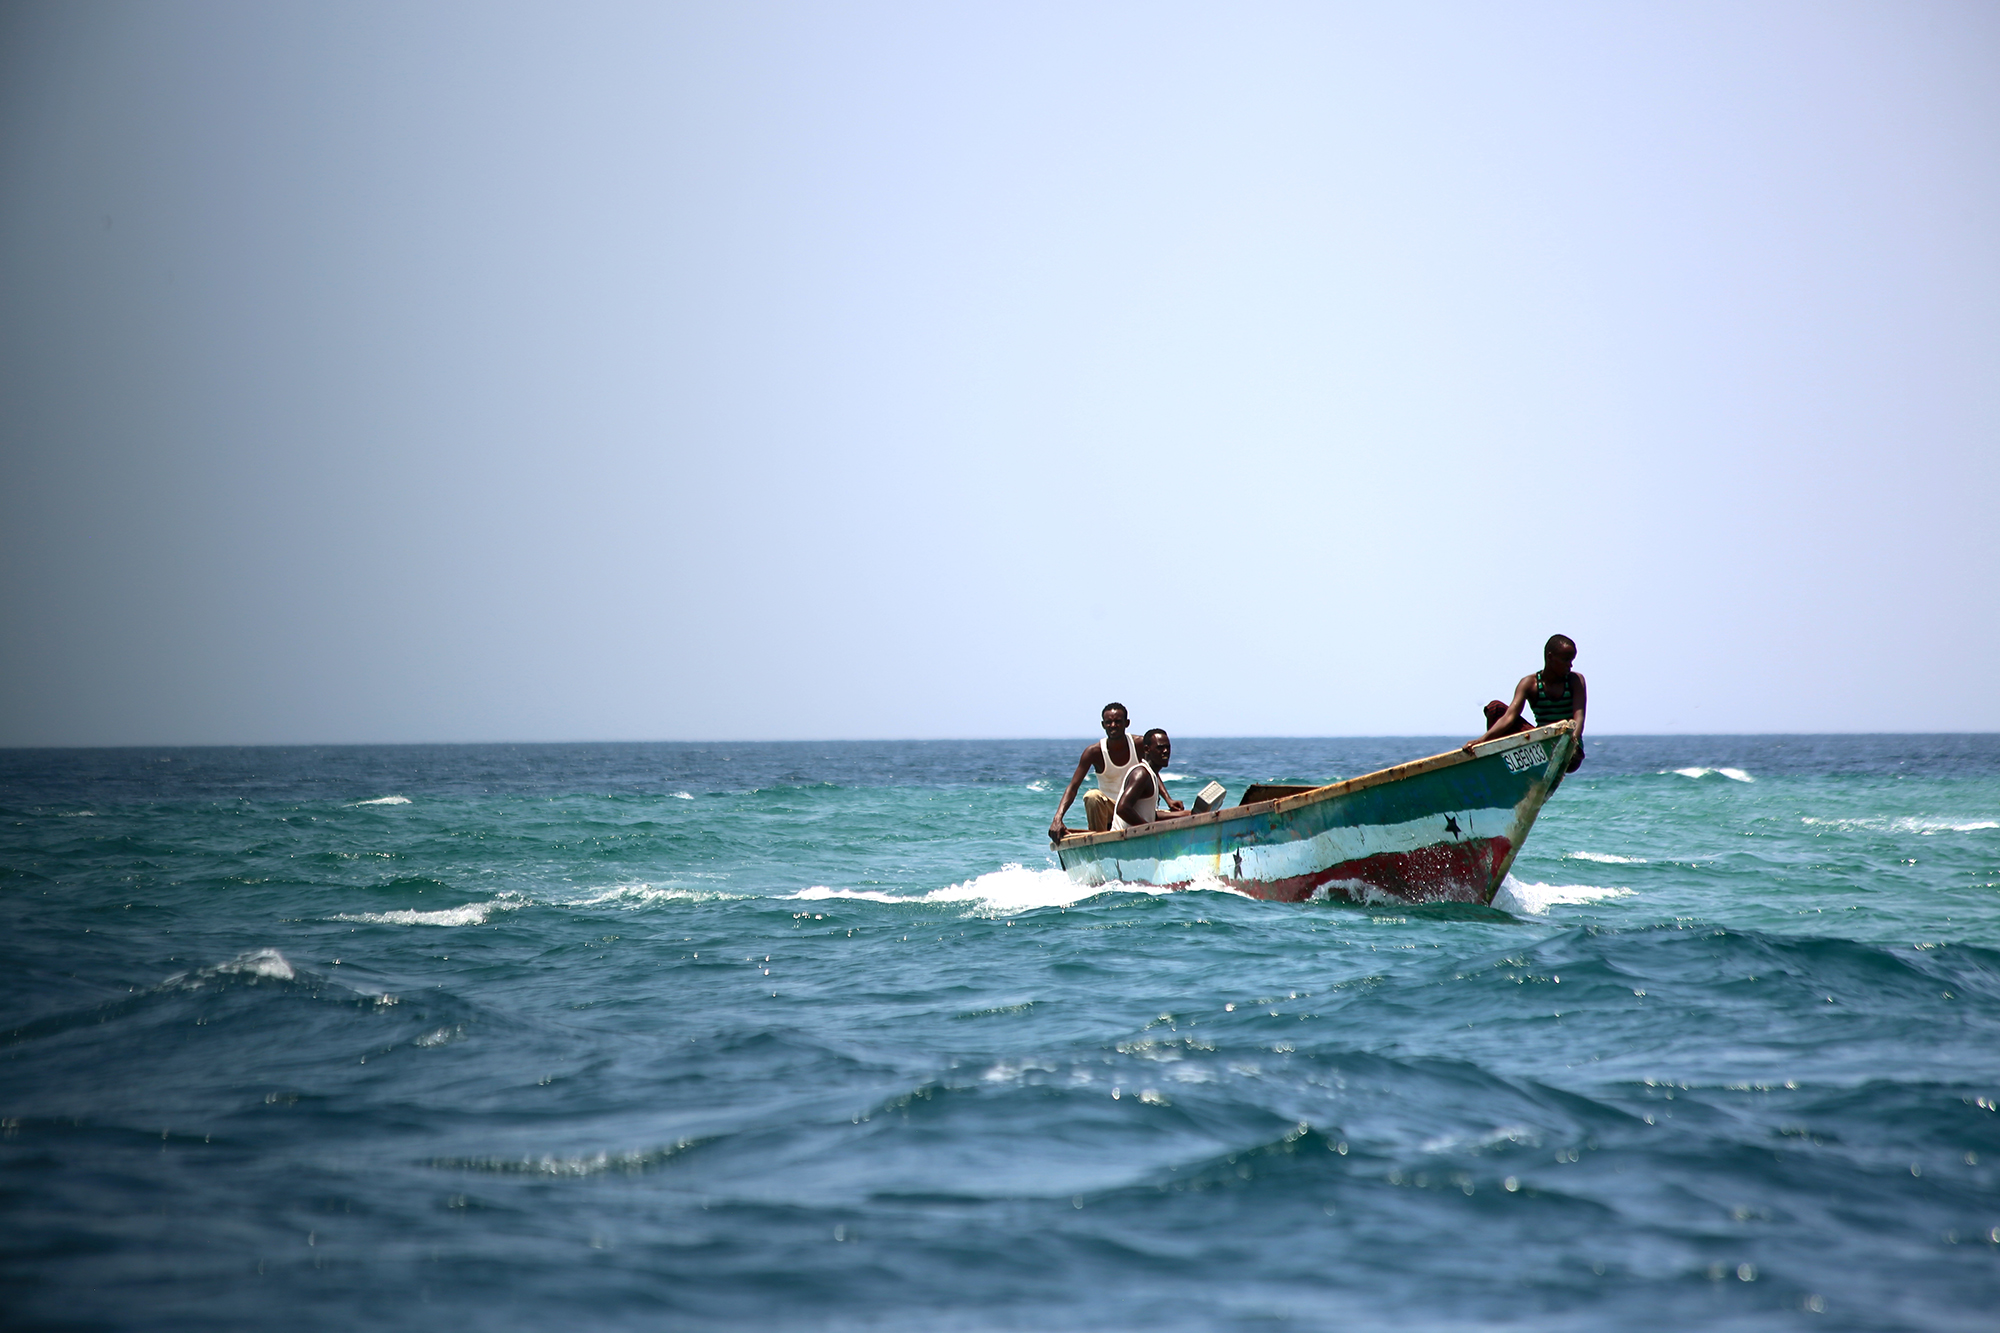 Fishers in the Gulf of Aden returning home with their catch. Copyright Jean-Pierre Larroque, One Earth Future Foundation.